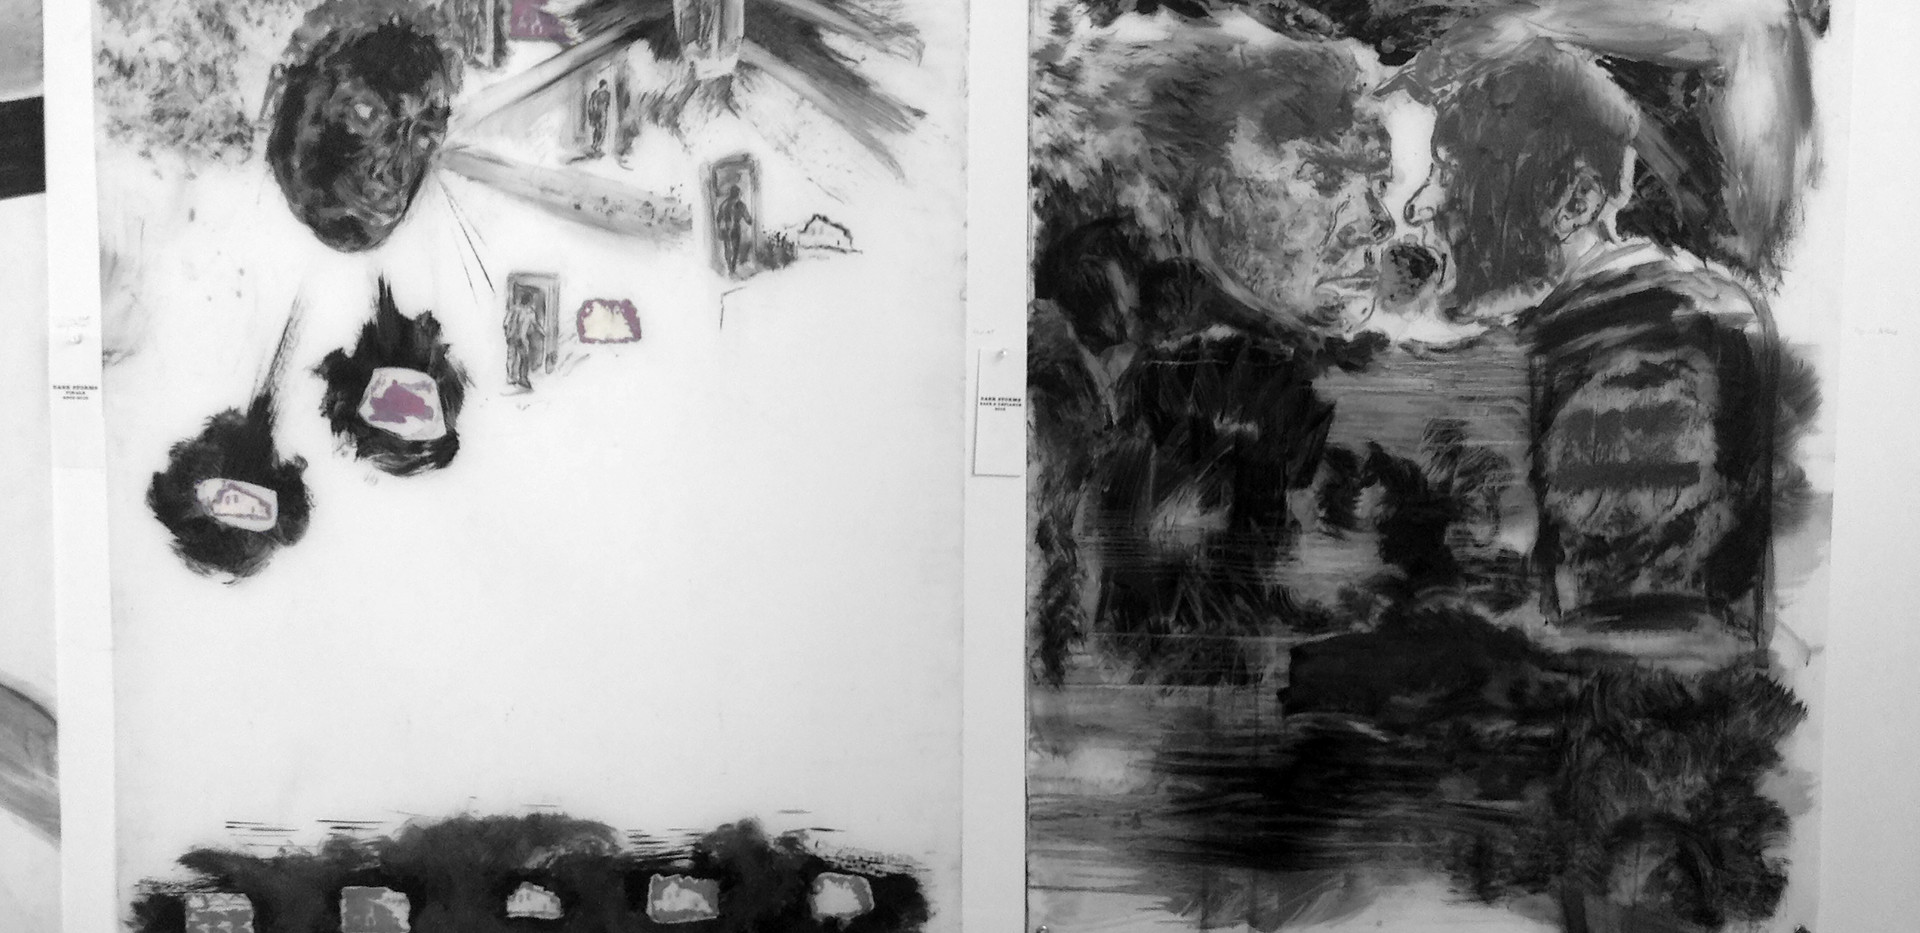 Showing space w. 2 large graphite drawings